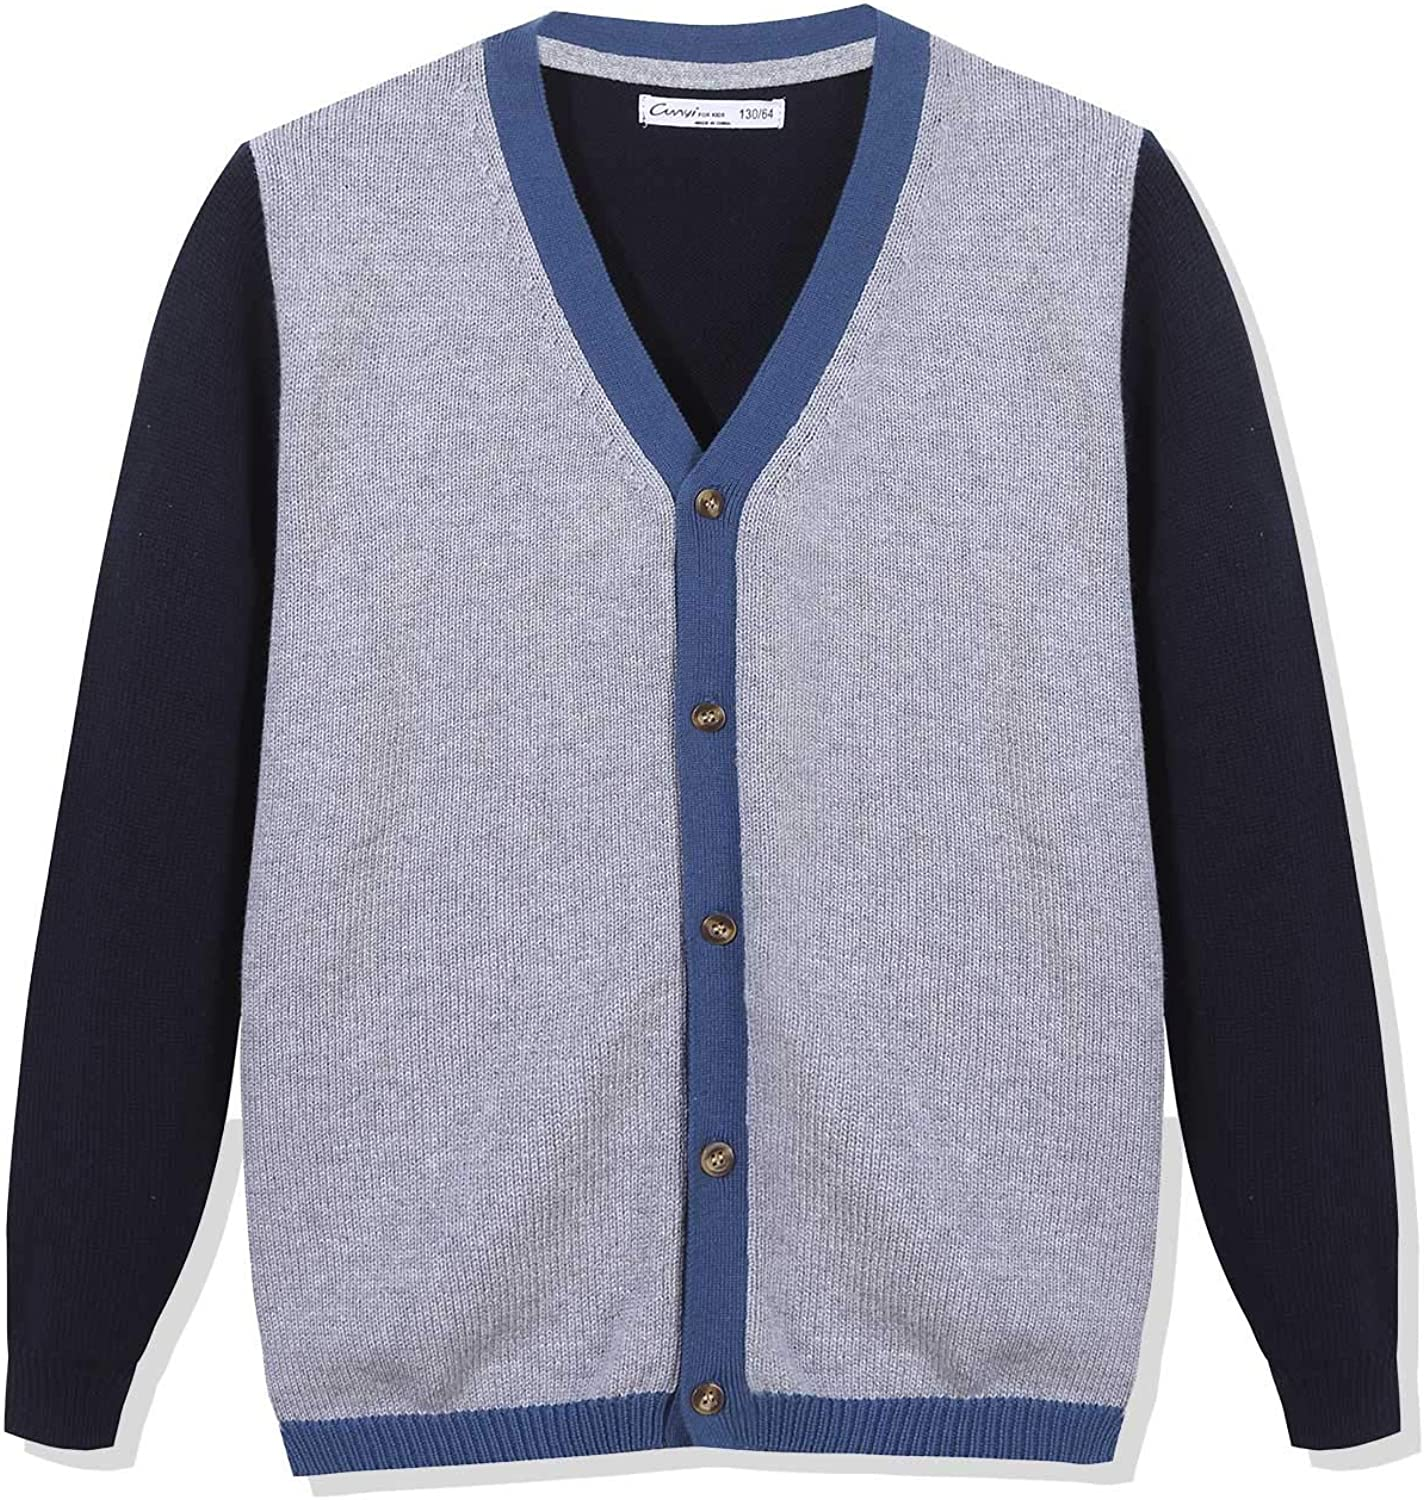 CUNYI Boys' V-Neck Button Up Cotton Knit Cardigan Sweater Contrast Color Outerwear: Clothing, Shoes & Jewelry